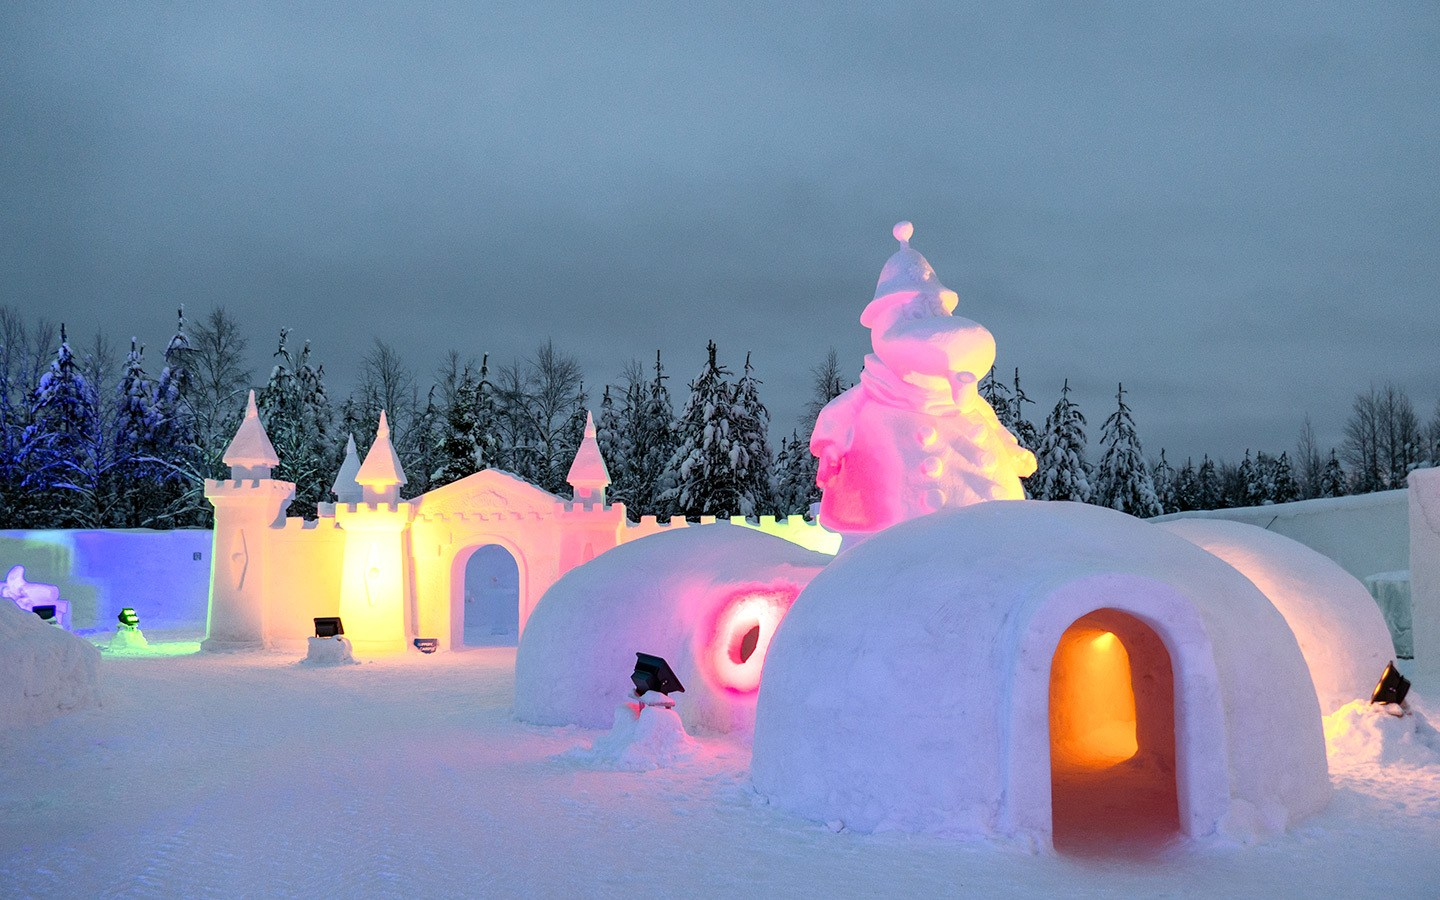 The Moomin Snow Castle in Finnish Lapland